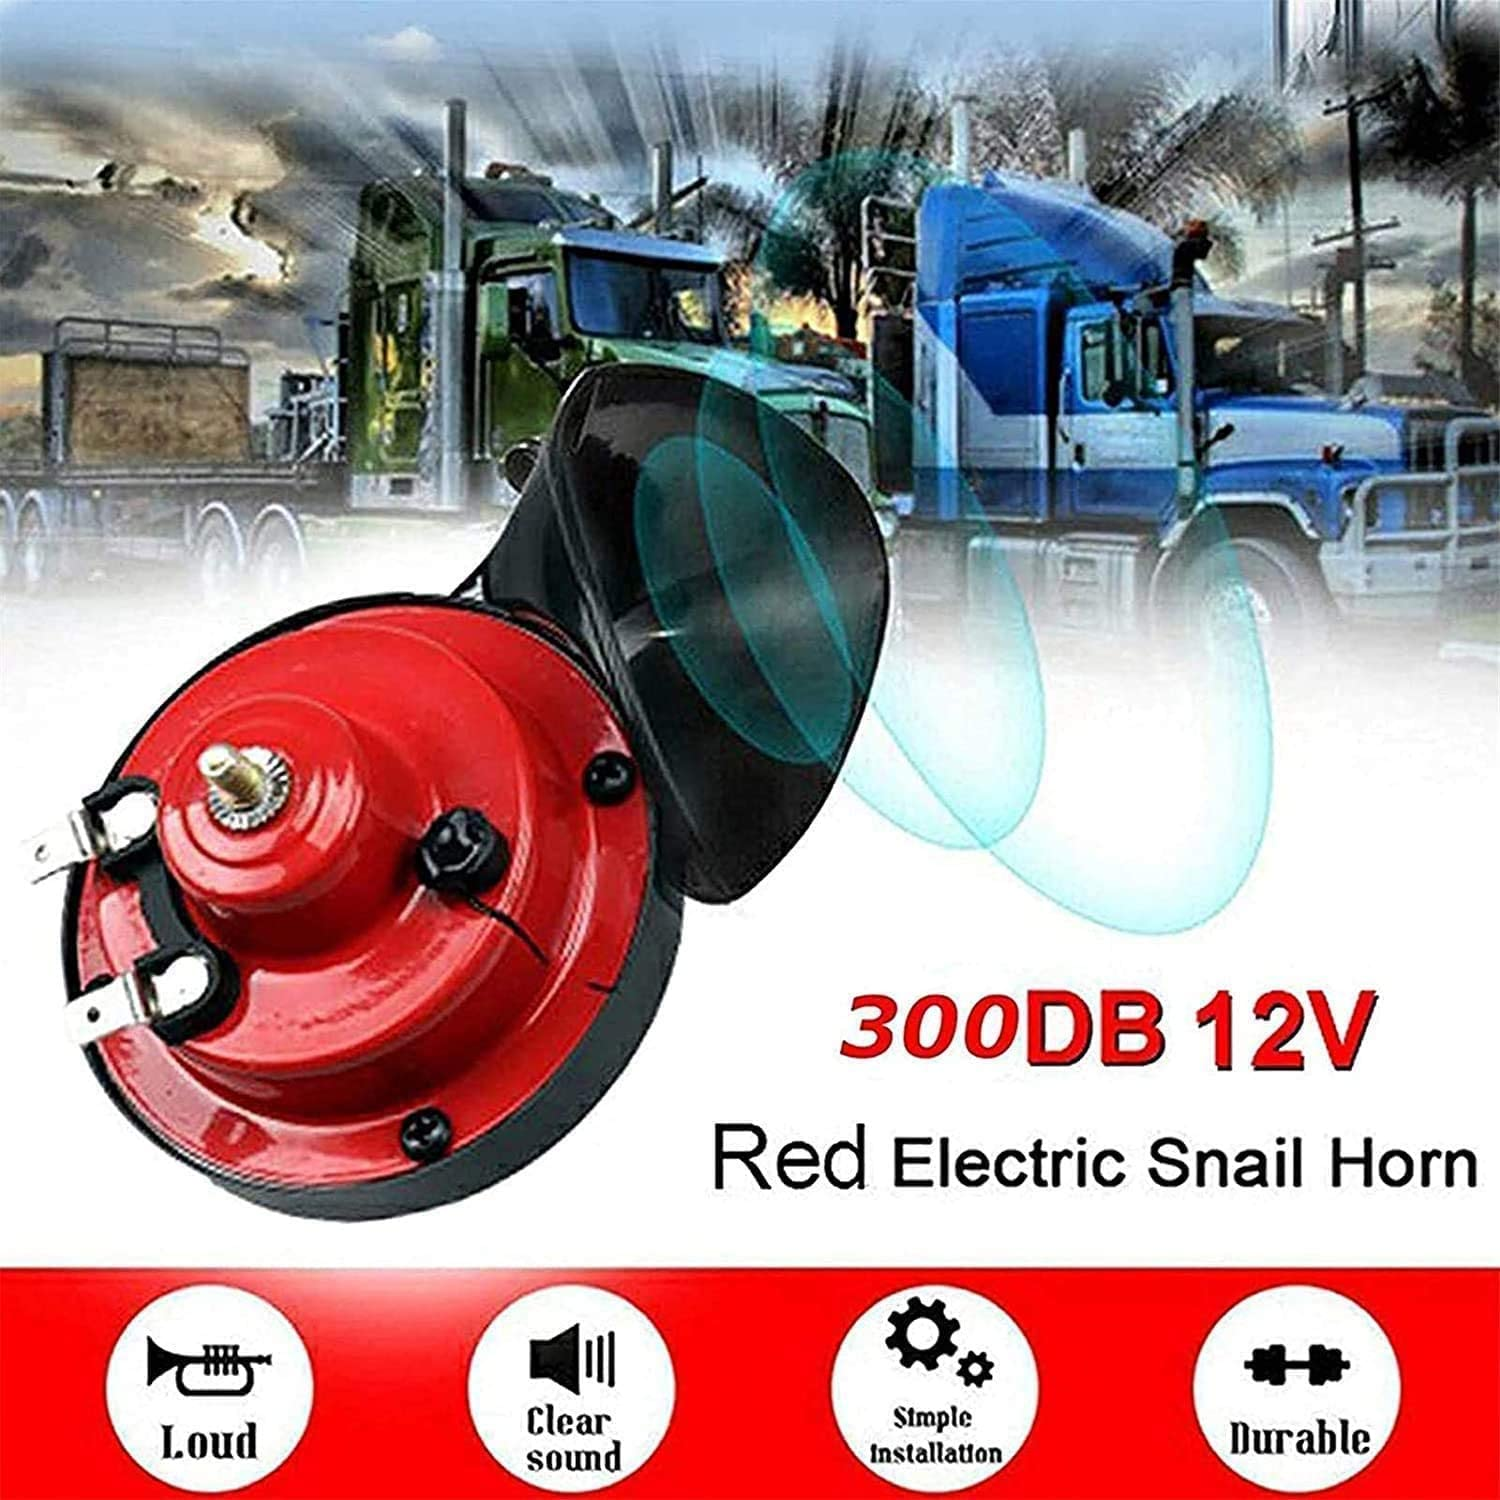 B1E3A1U4TY Turbohorn 300DB 2021 New Generation Train Horn for Cars 2 Pack 12v Loud Treble and Bass Air Horn for Truck 300 DB Train Horn for Trucks The Loudest Horn Ever